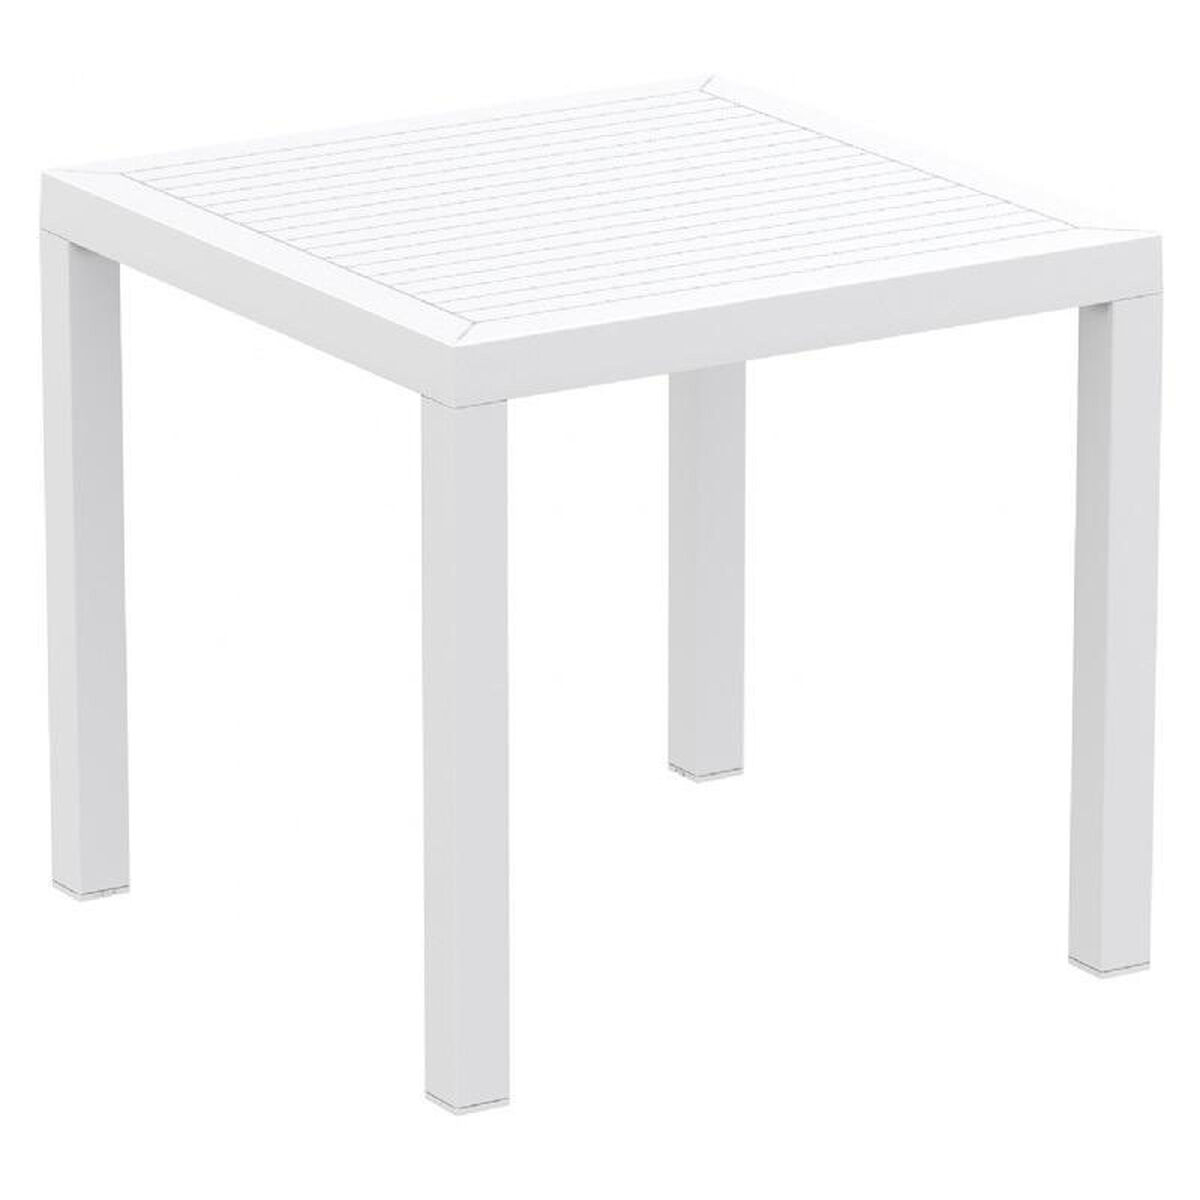 White Square Dining Table: Ares Resin Outdoor 31'' Square Dining Table